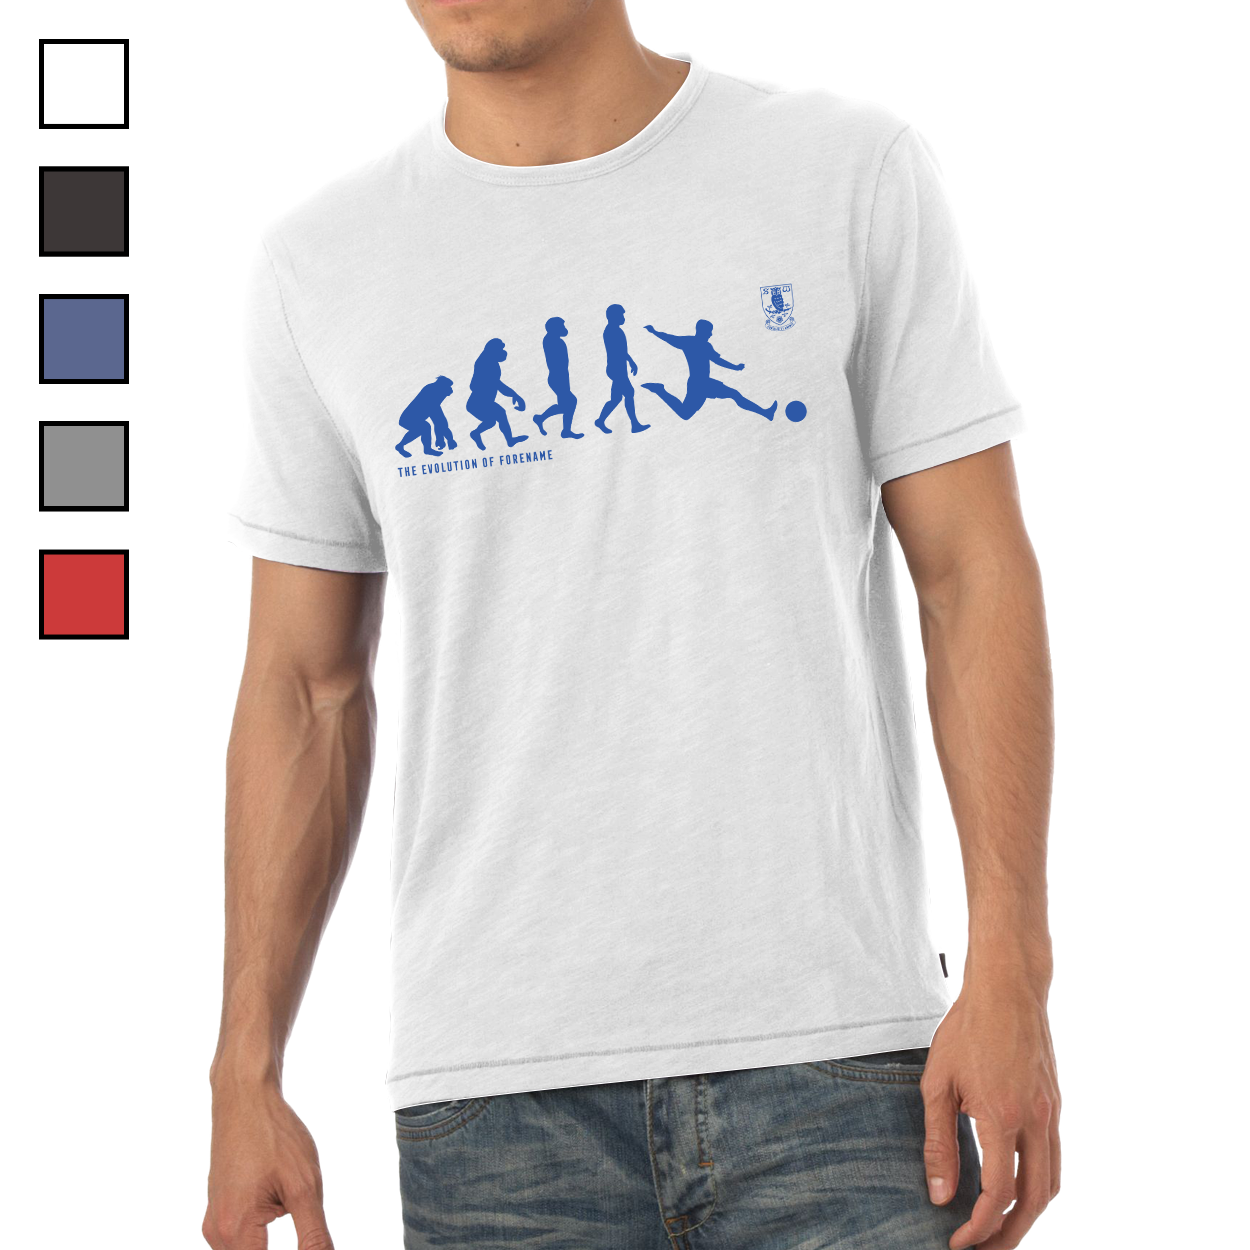 Sheffield Wednesday Evolution Mens T-Shirt